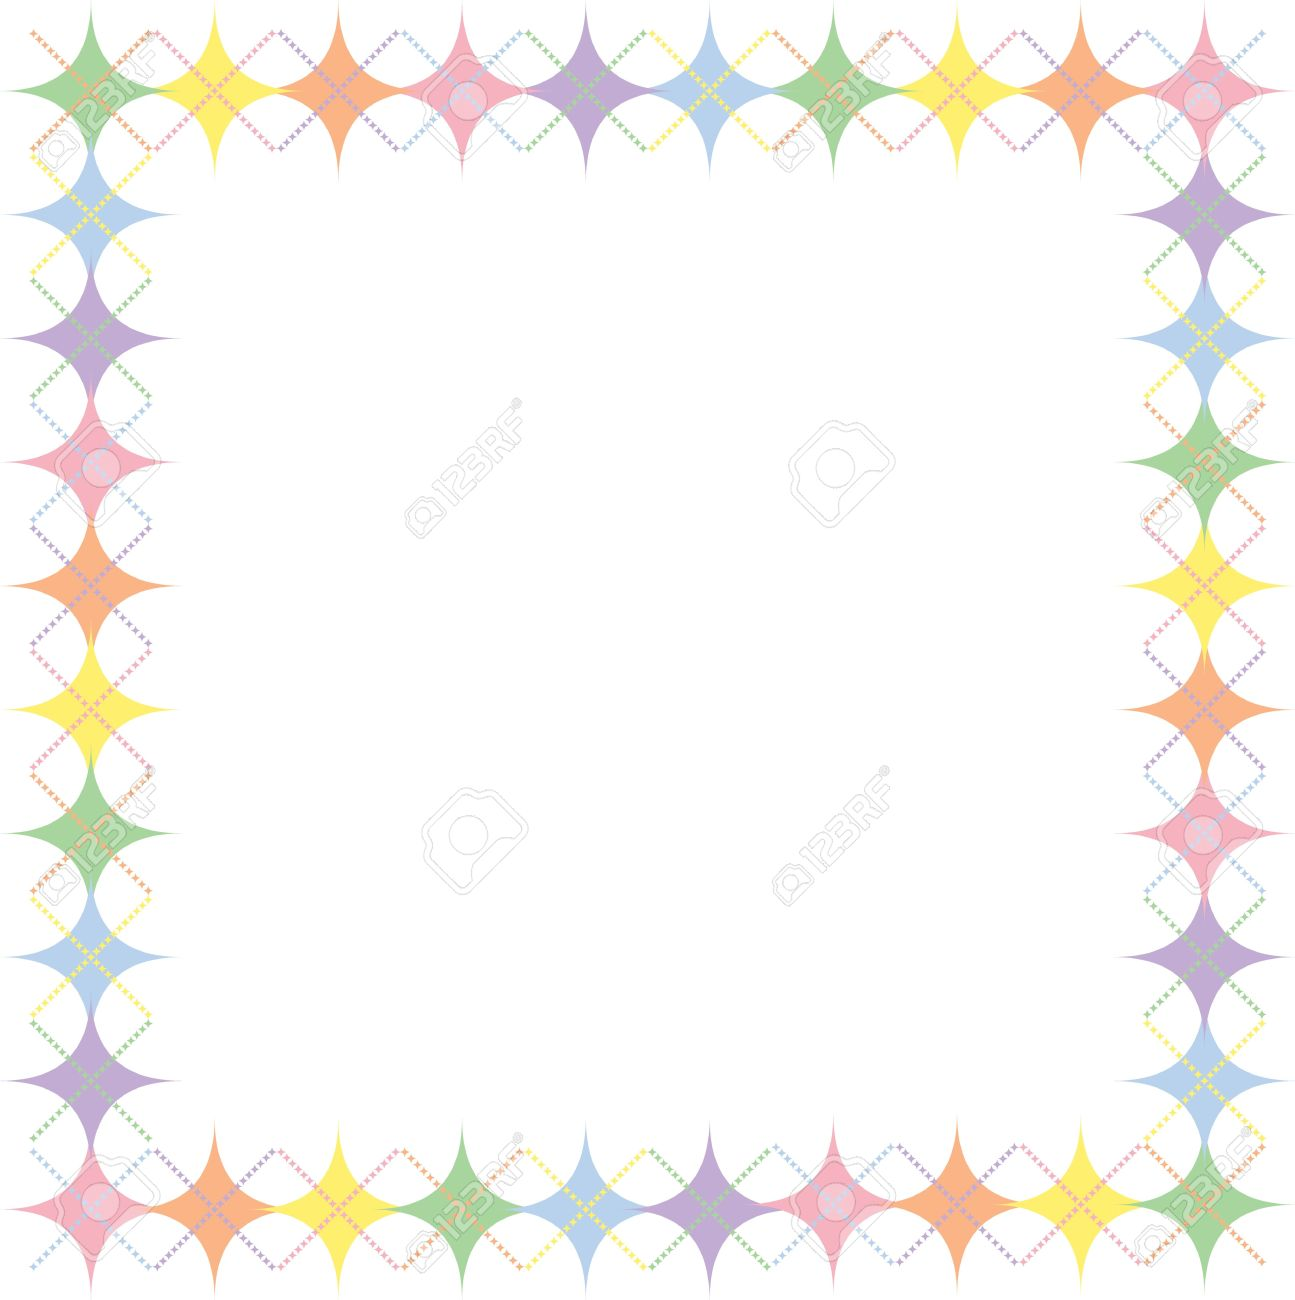 Border Of Pastel Rainbow Colored Argyle Stars Pattern With Space